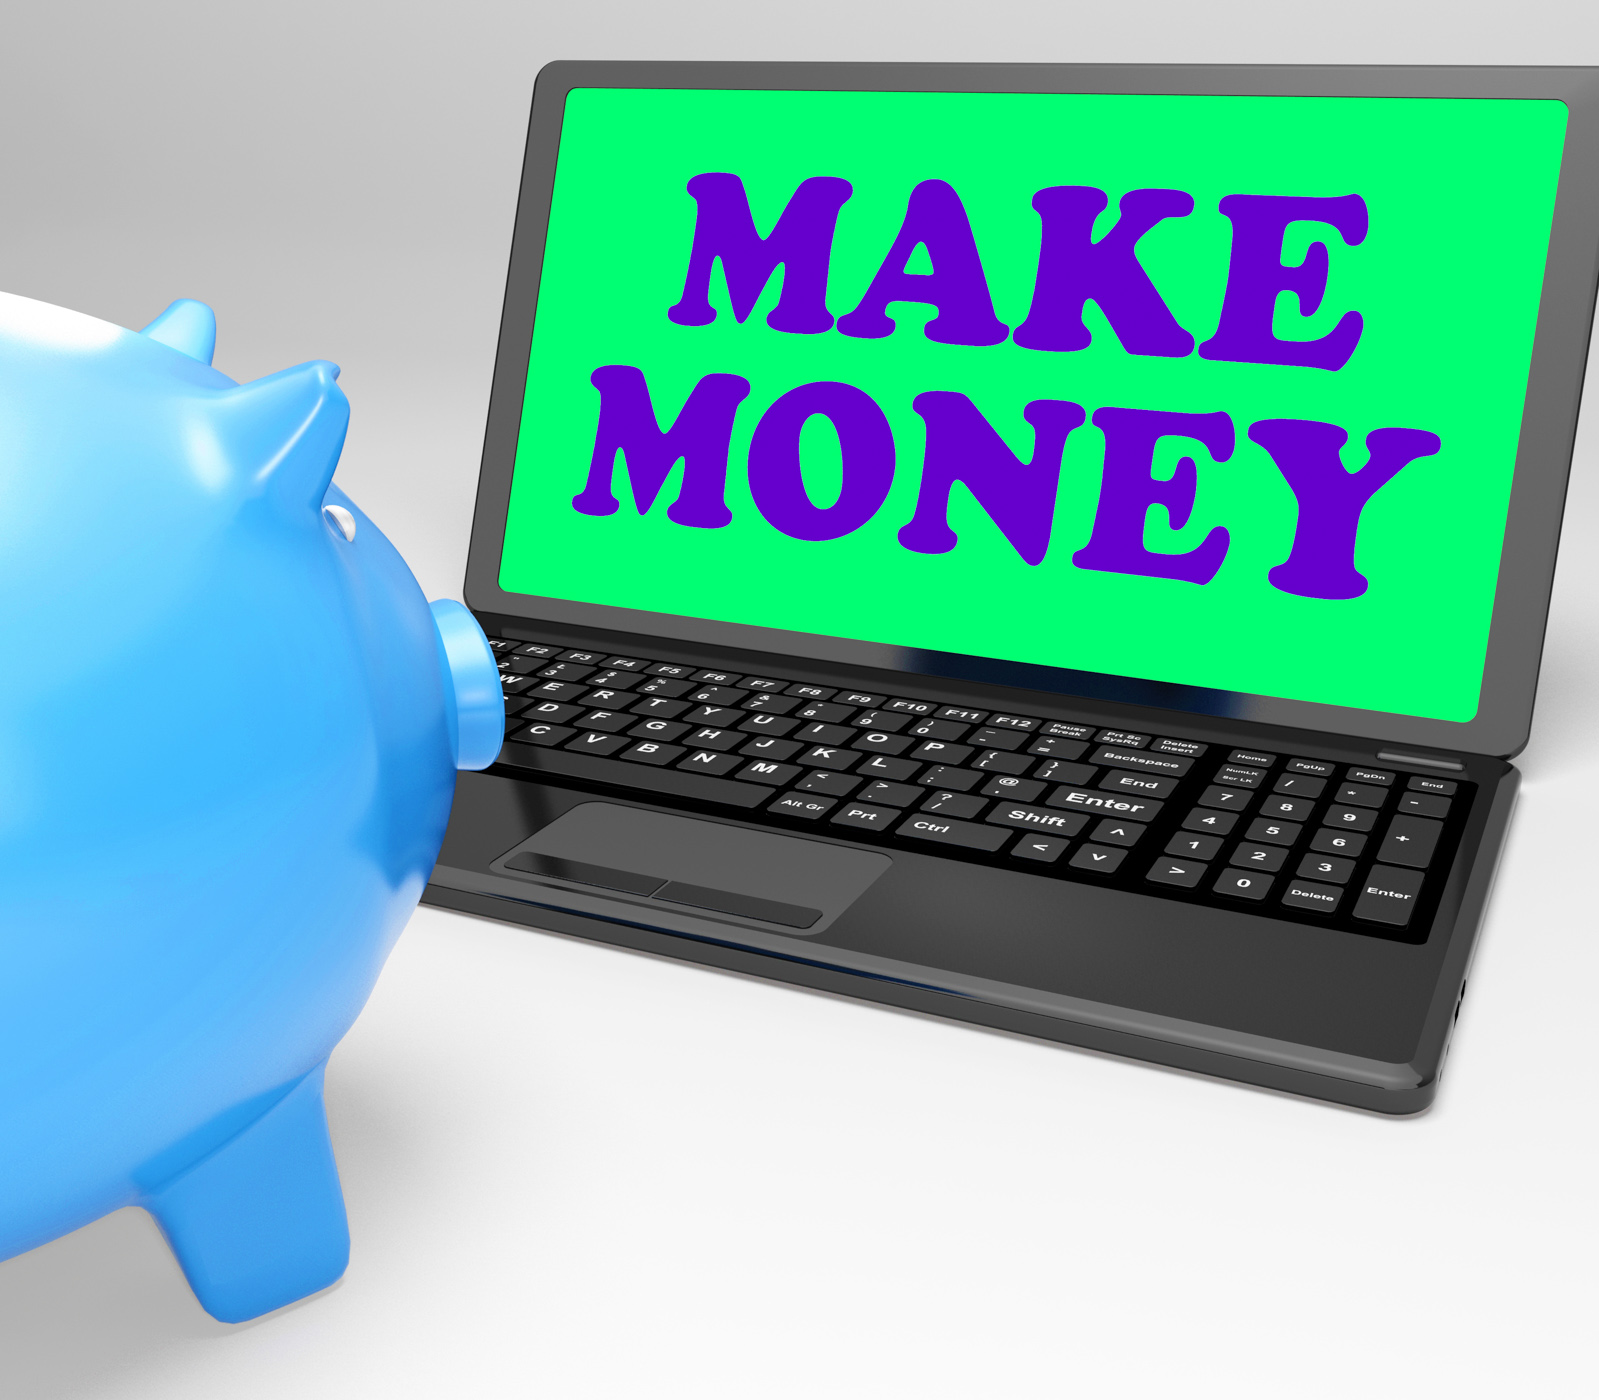 Make money laptop means accumulating wealth and prosperity photo